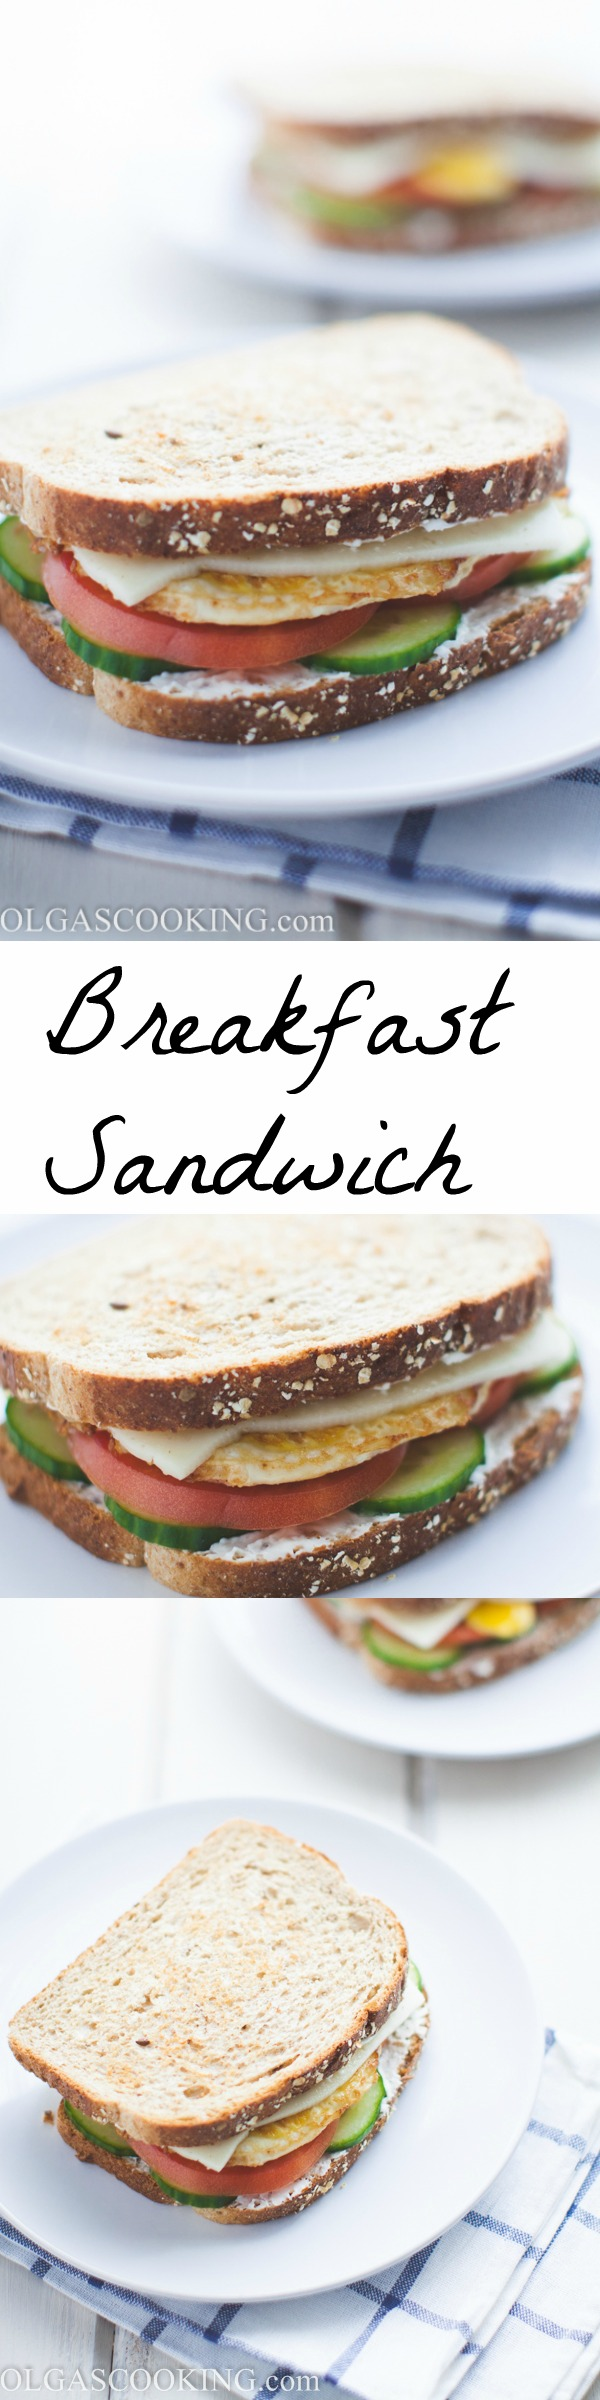 Quick and easy breakfast sandwich...perfect food for when you are on the go